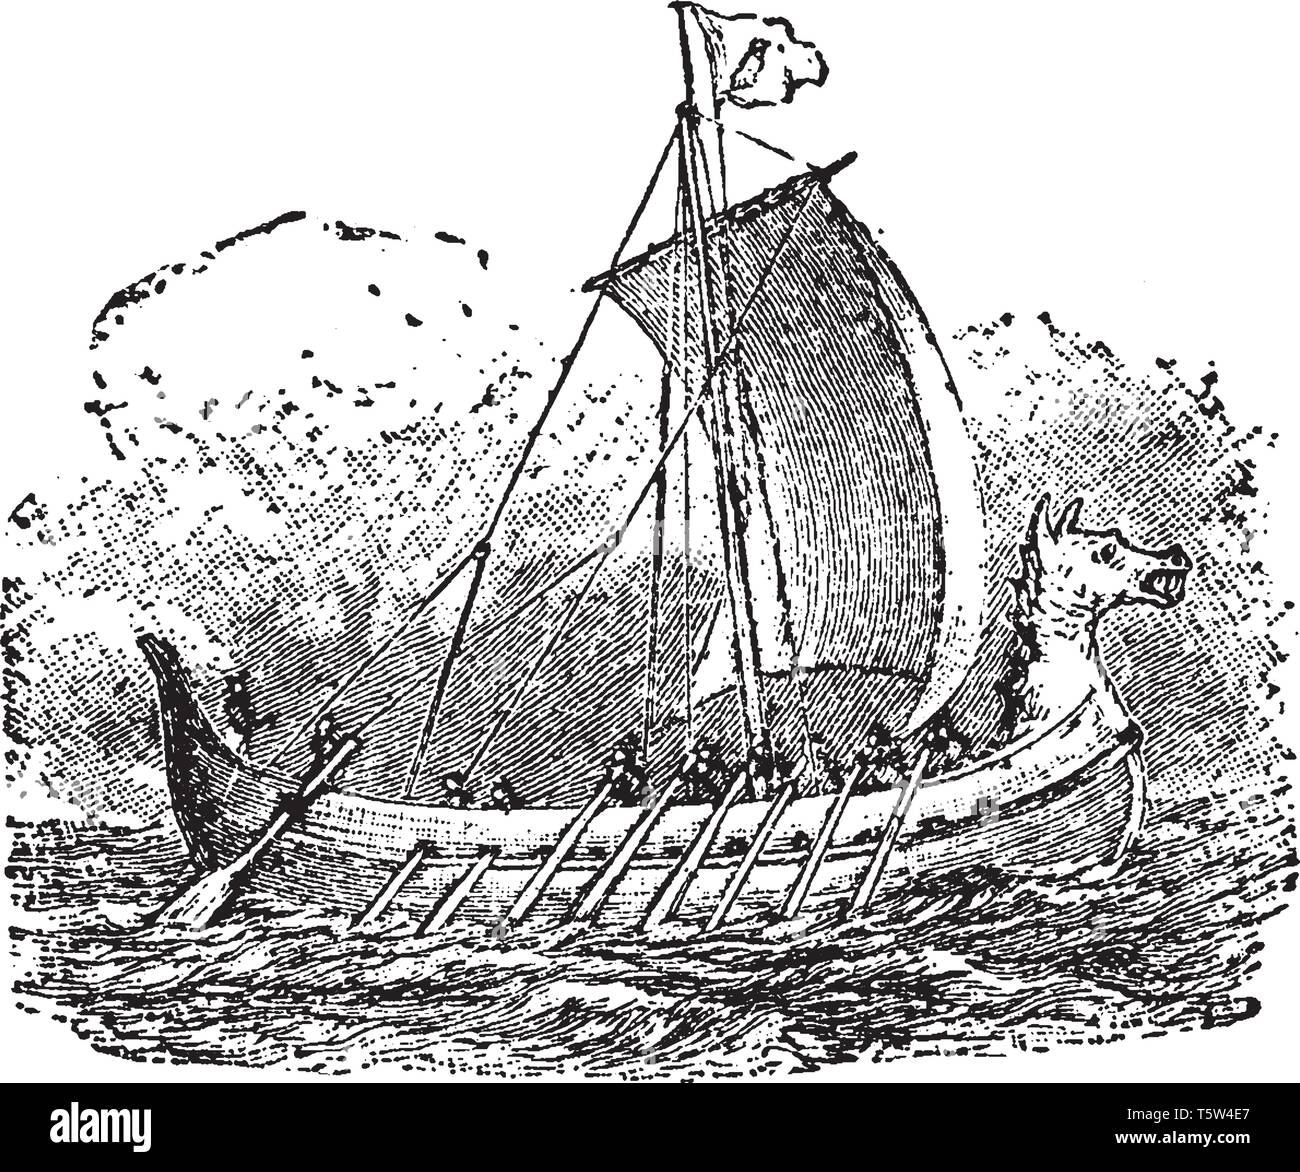 Norsemen is a name applied to the inhabitants of the coast regions of Scandinavia and North Germany, vintage line drawing or engraving illustration. - Stock Vector